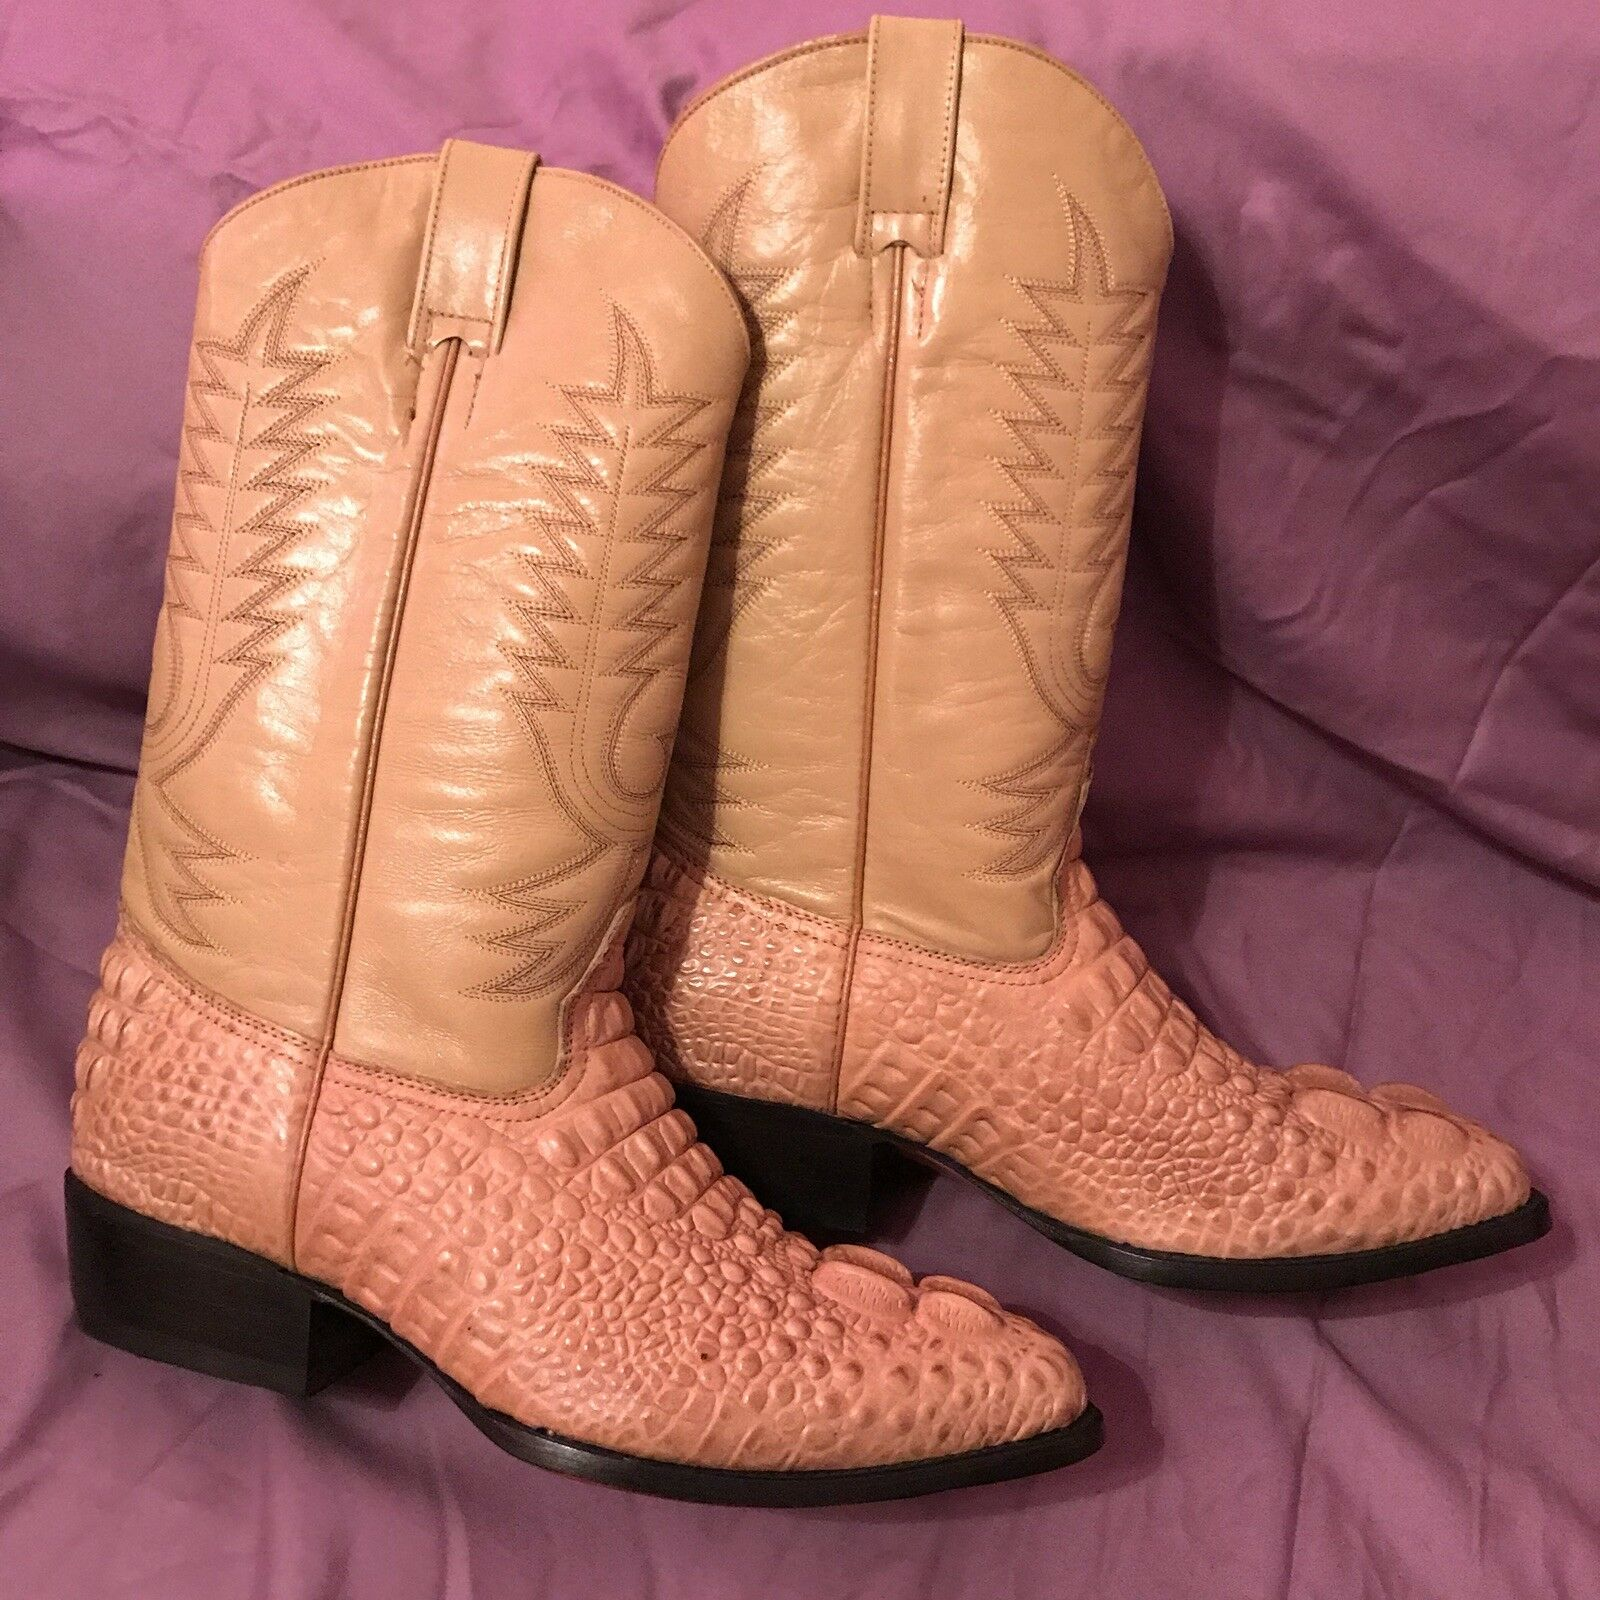 JEVER Cowboy Western Leather Boots Light Brown Gator Tail Style Size 11 EE US